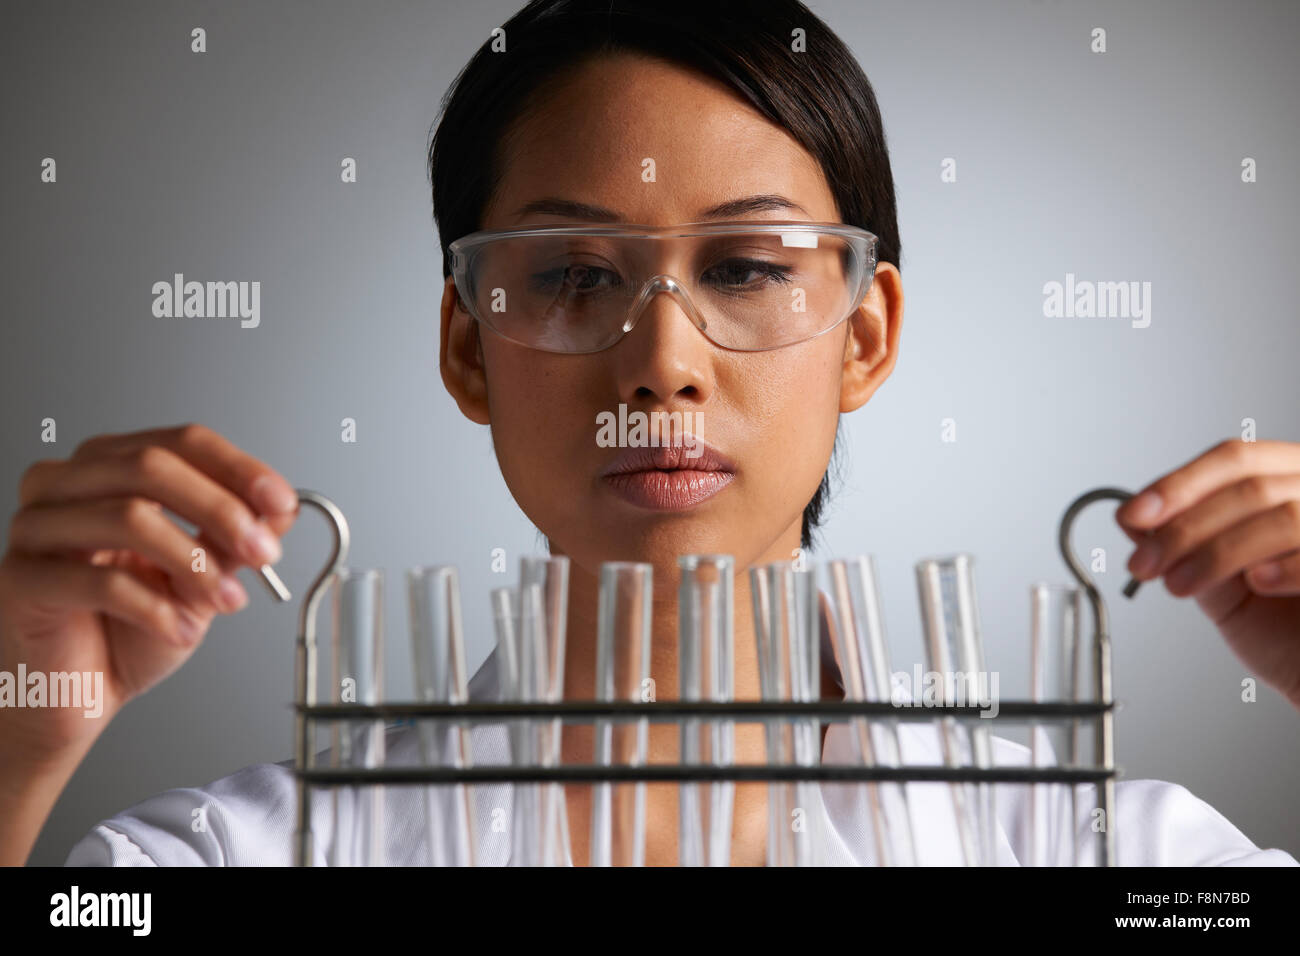 Female Scientist Examines Test Tubes - Stock Image